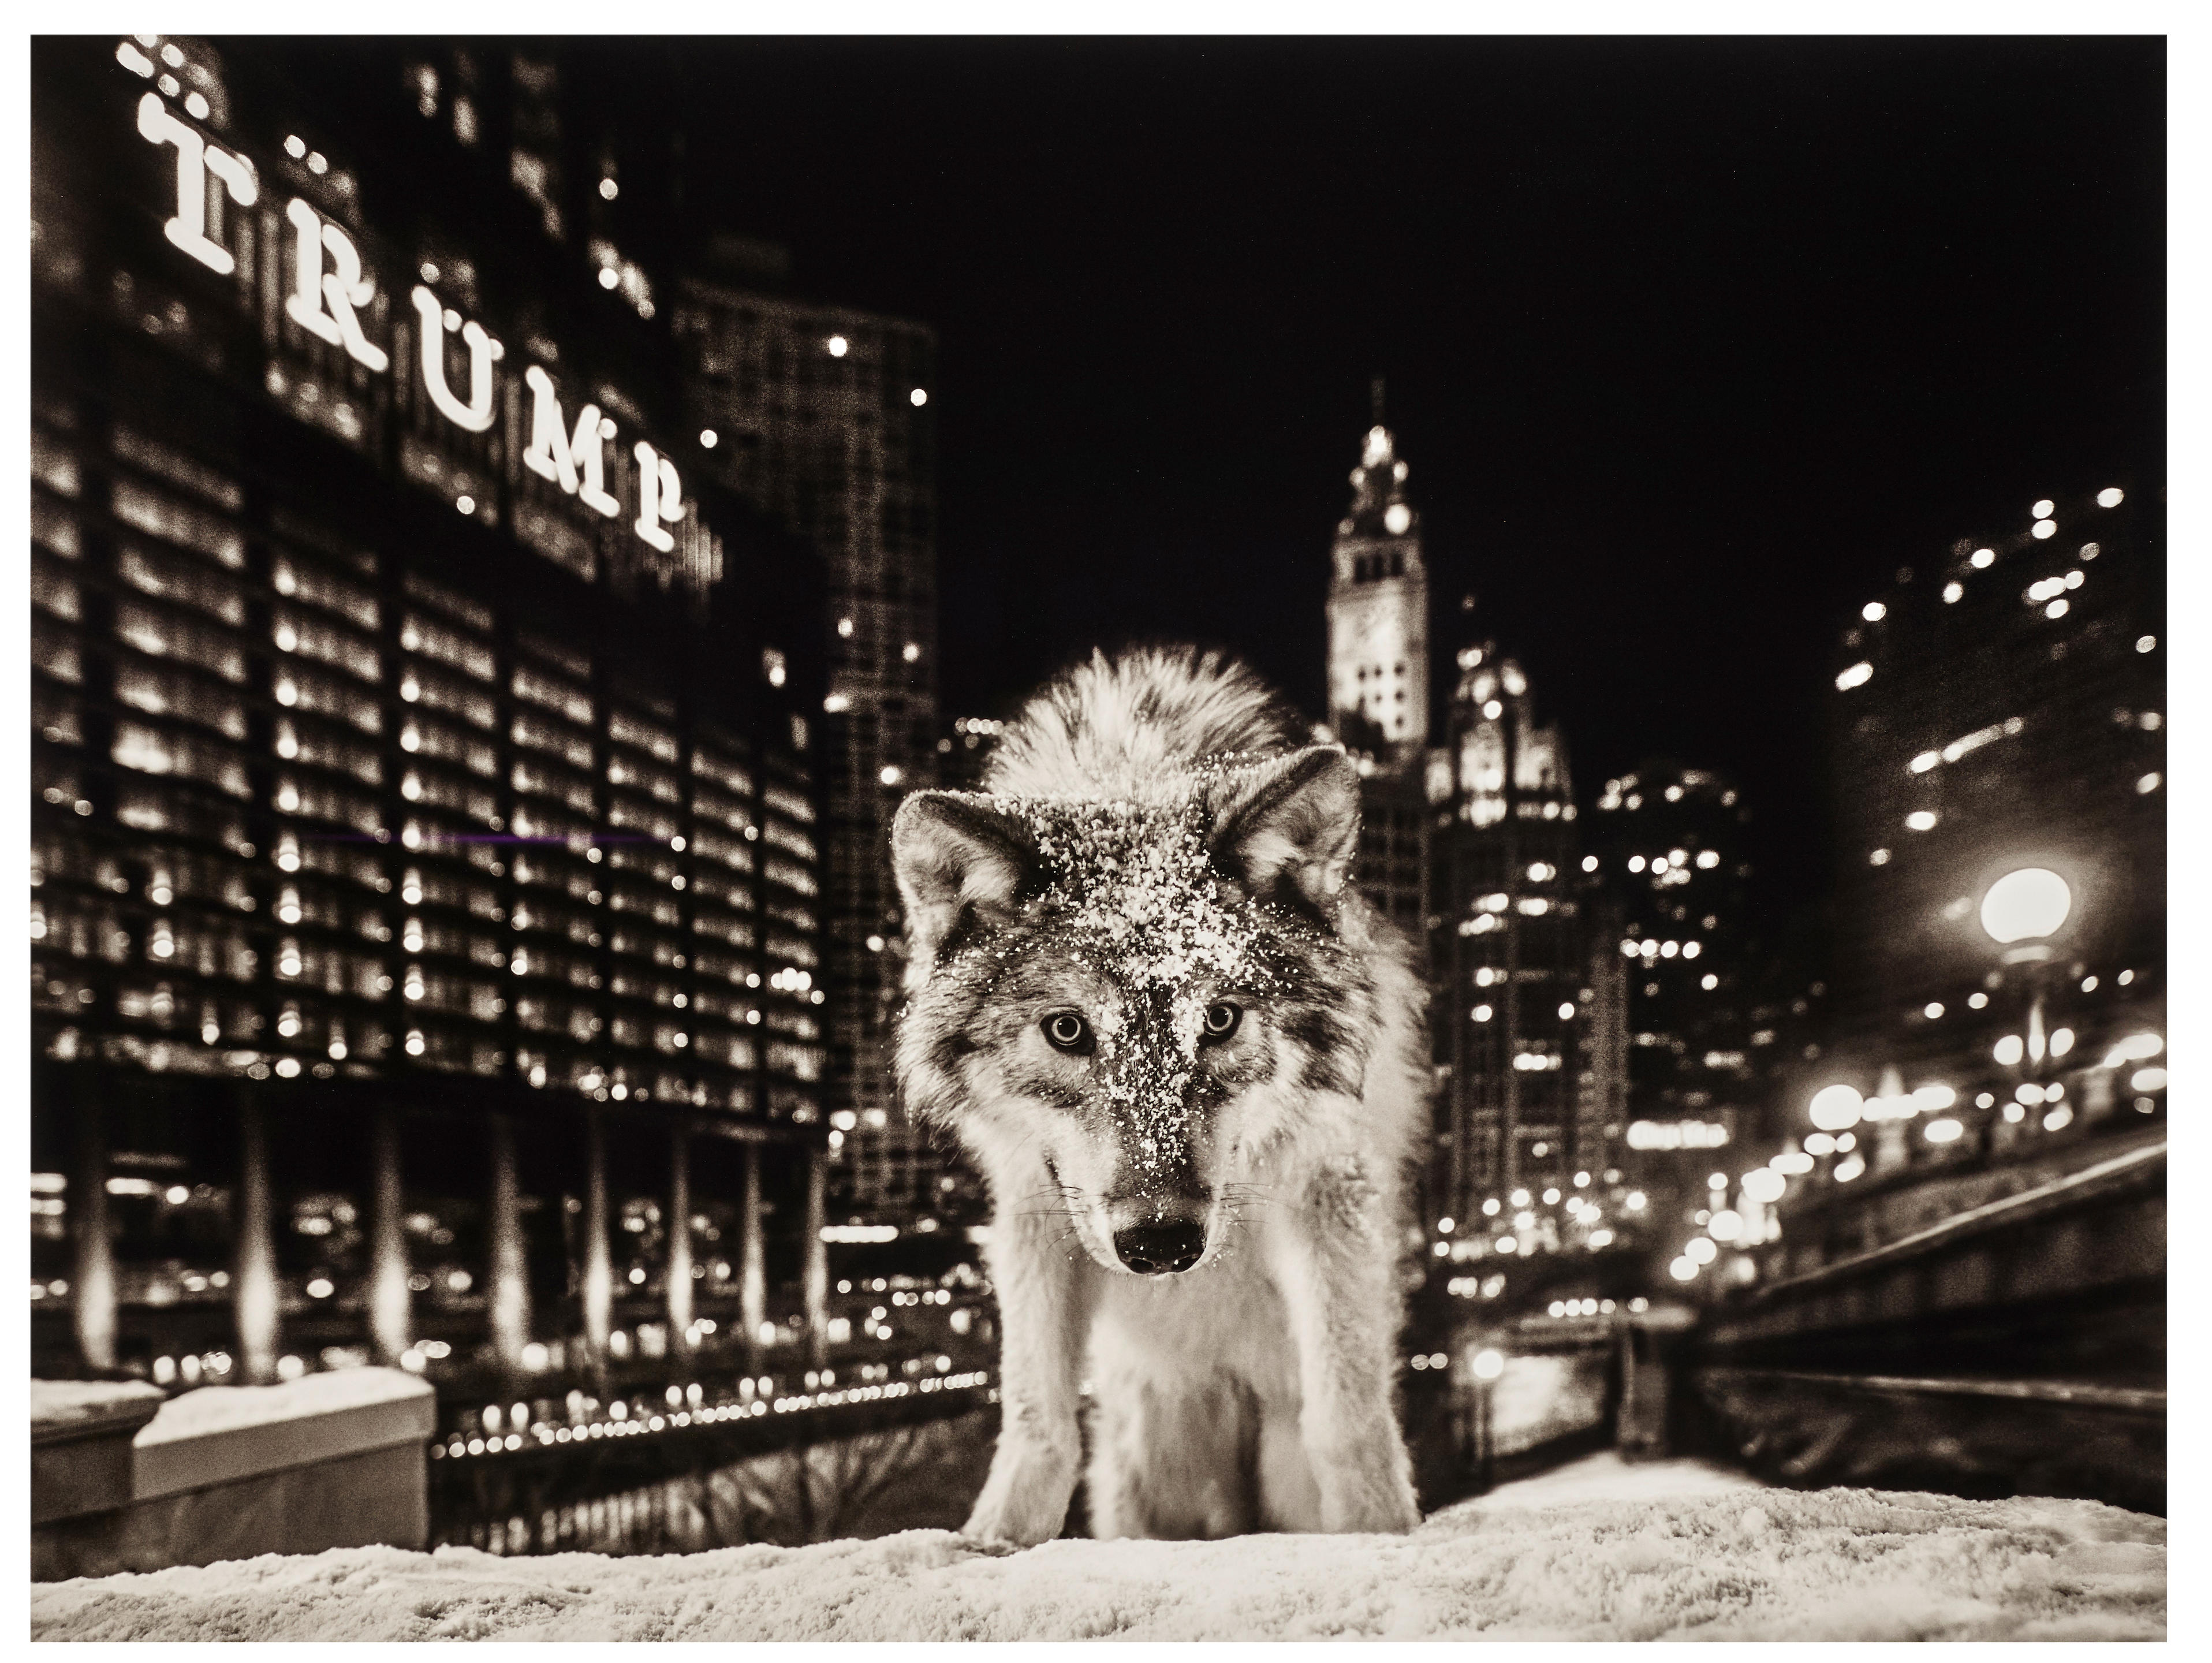 David Yarrow (born 1966); It Is Only A Matter of Time 2;